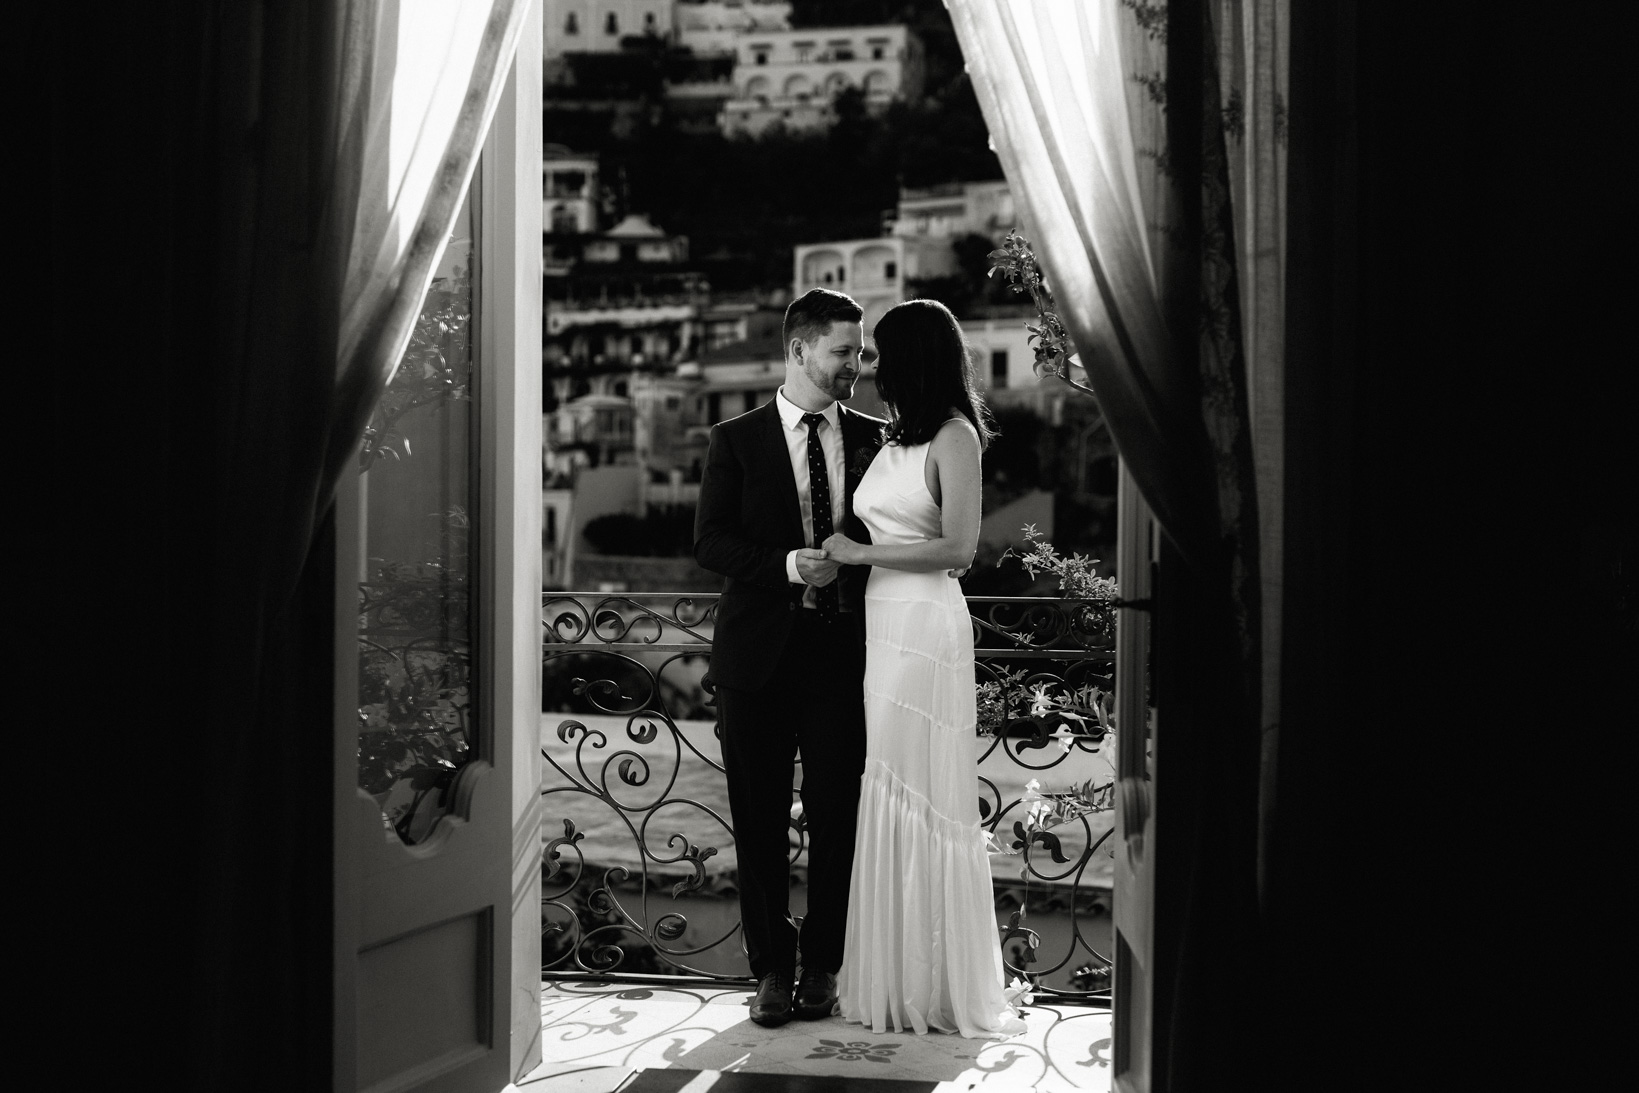 38-1-positano-wedding-photographer-italy